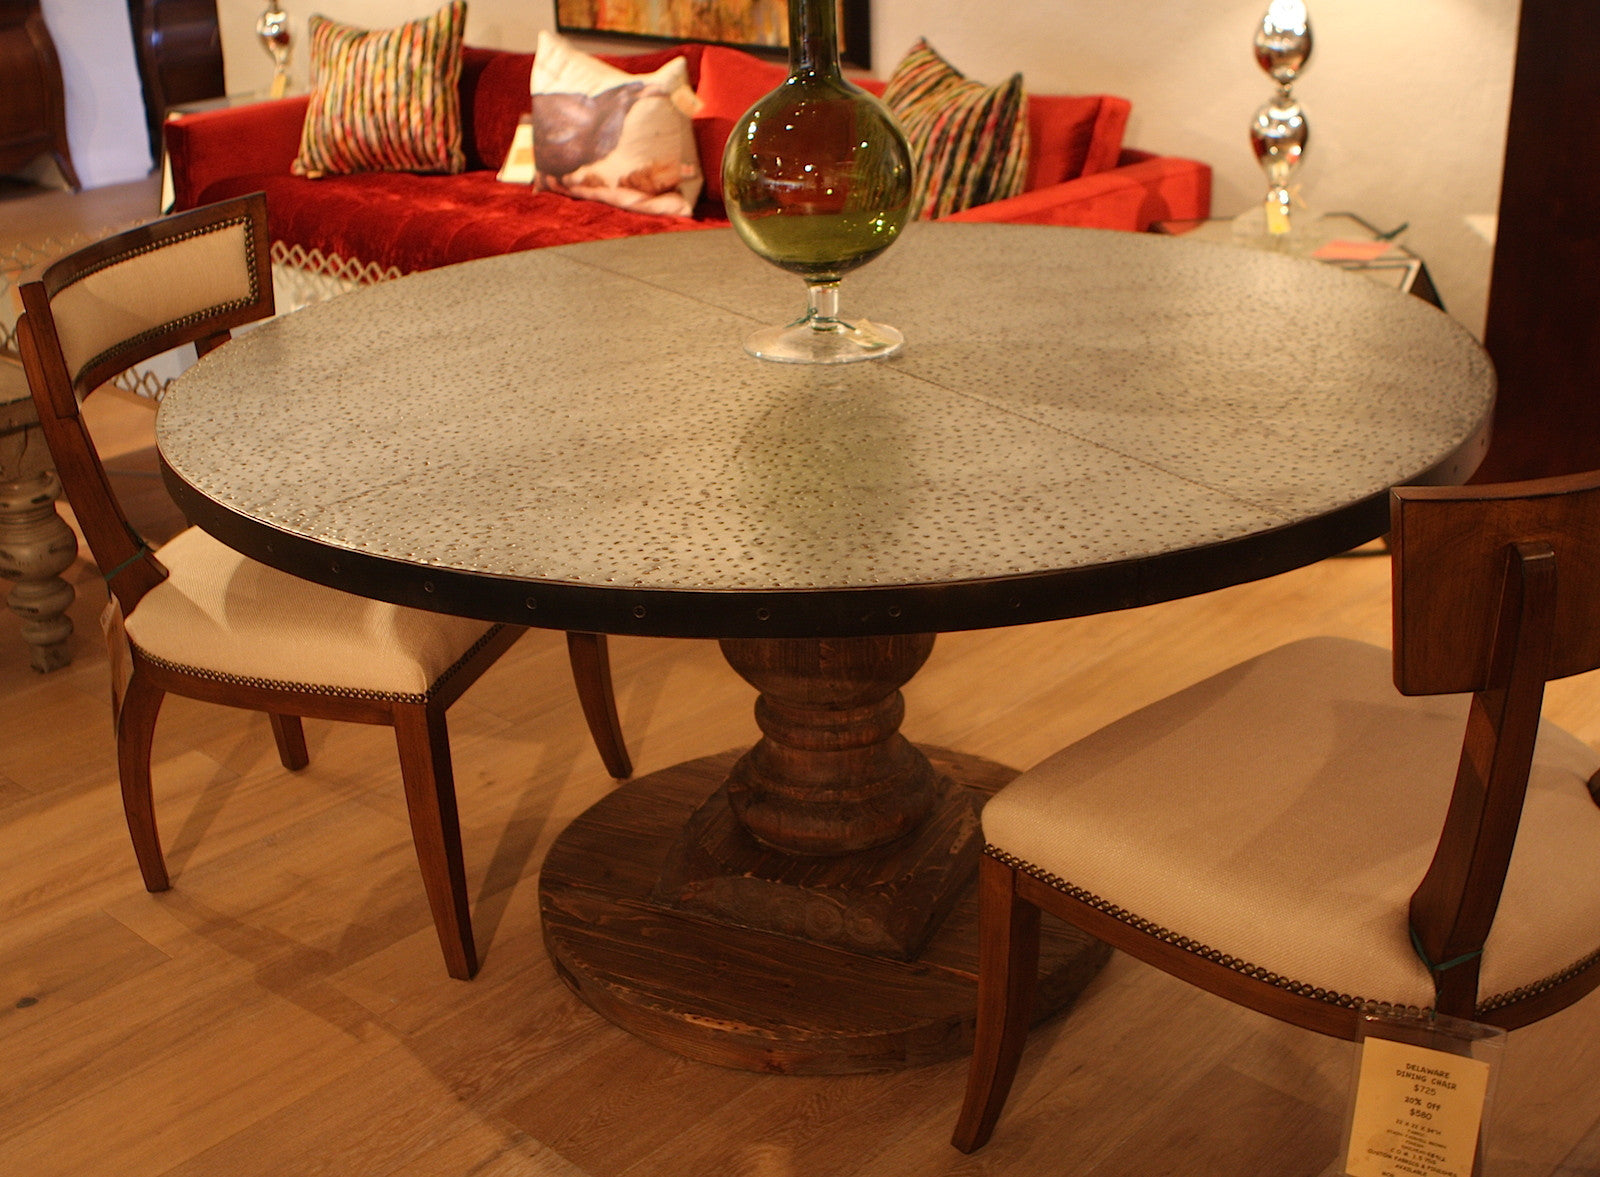 Round Pedestal Dining Table With Zinc Top – Mortise & Tenon